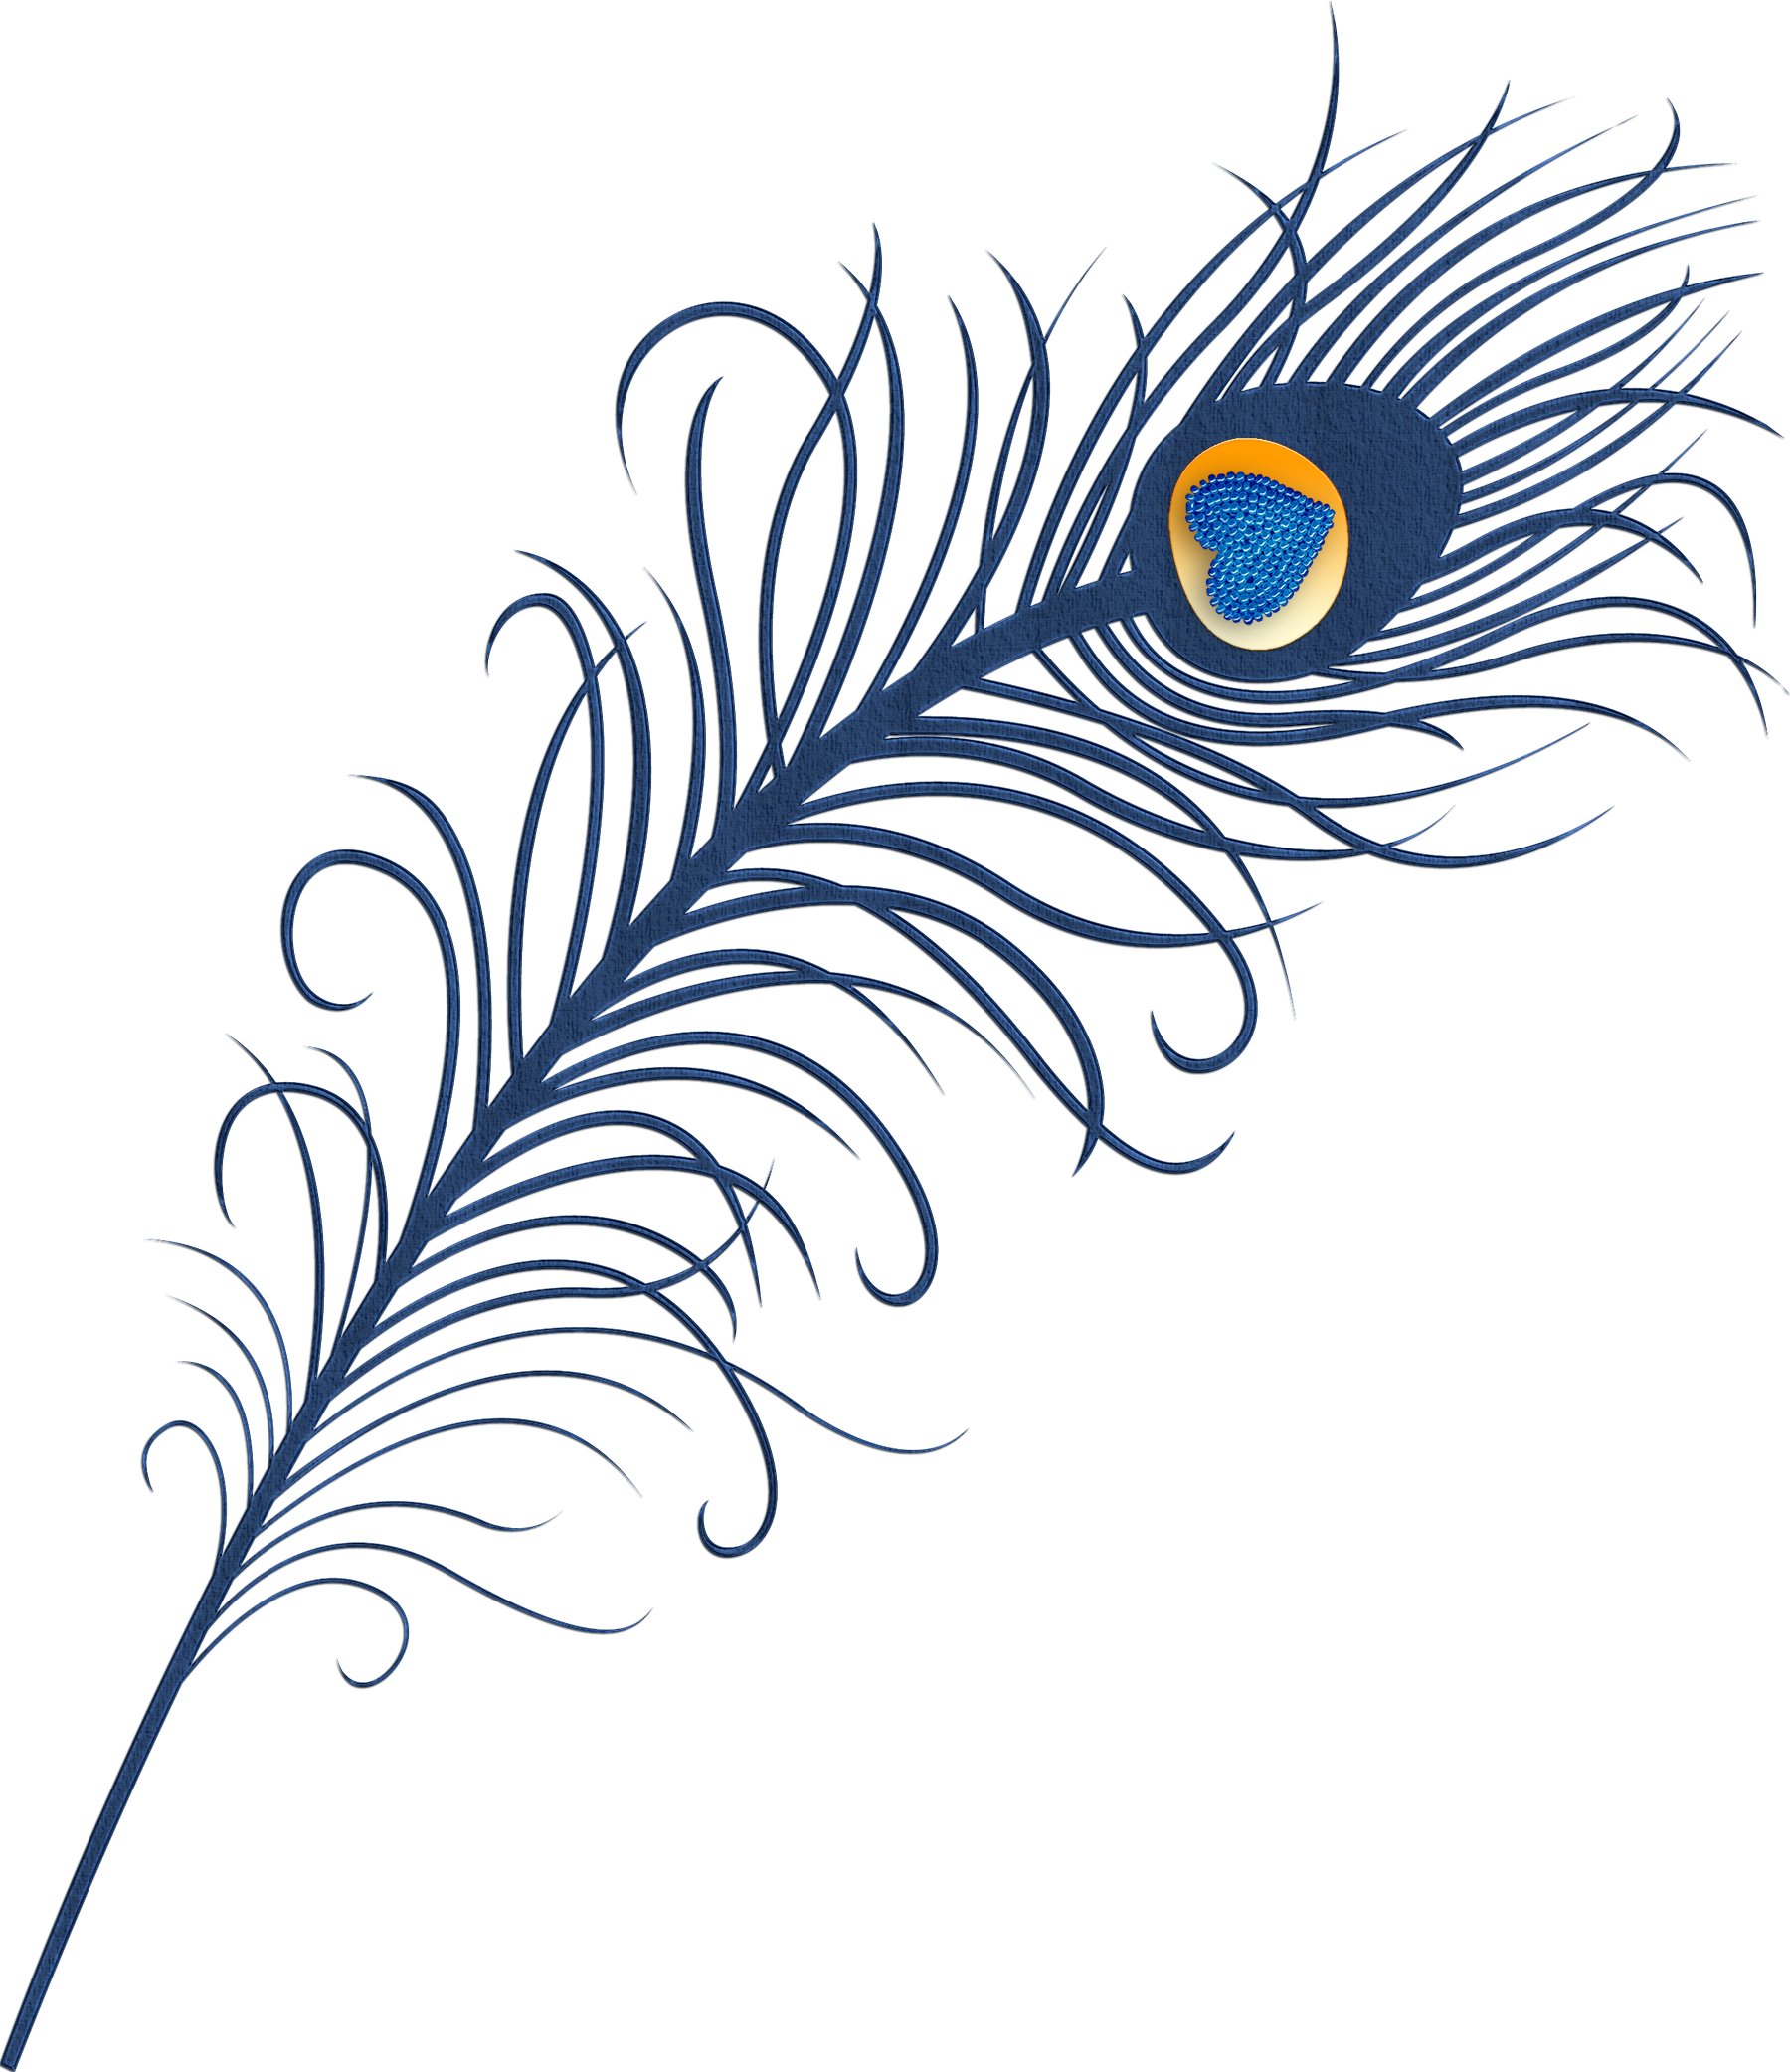 Designed turkey feathers clipart png library Peacock Feather Clipart at GetDrawings.com | Free for personal use ... png library